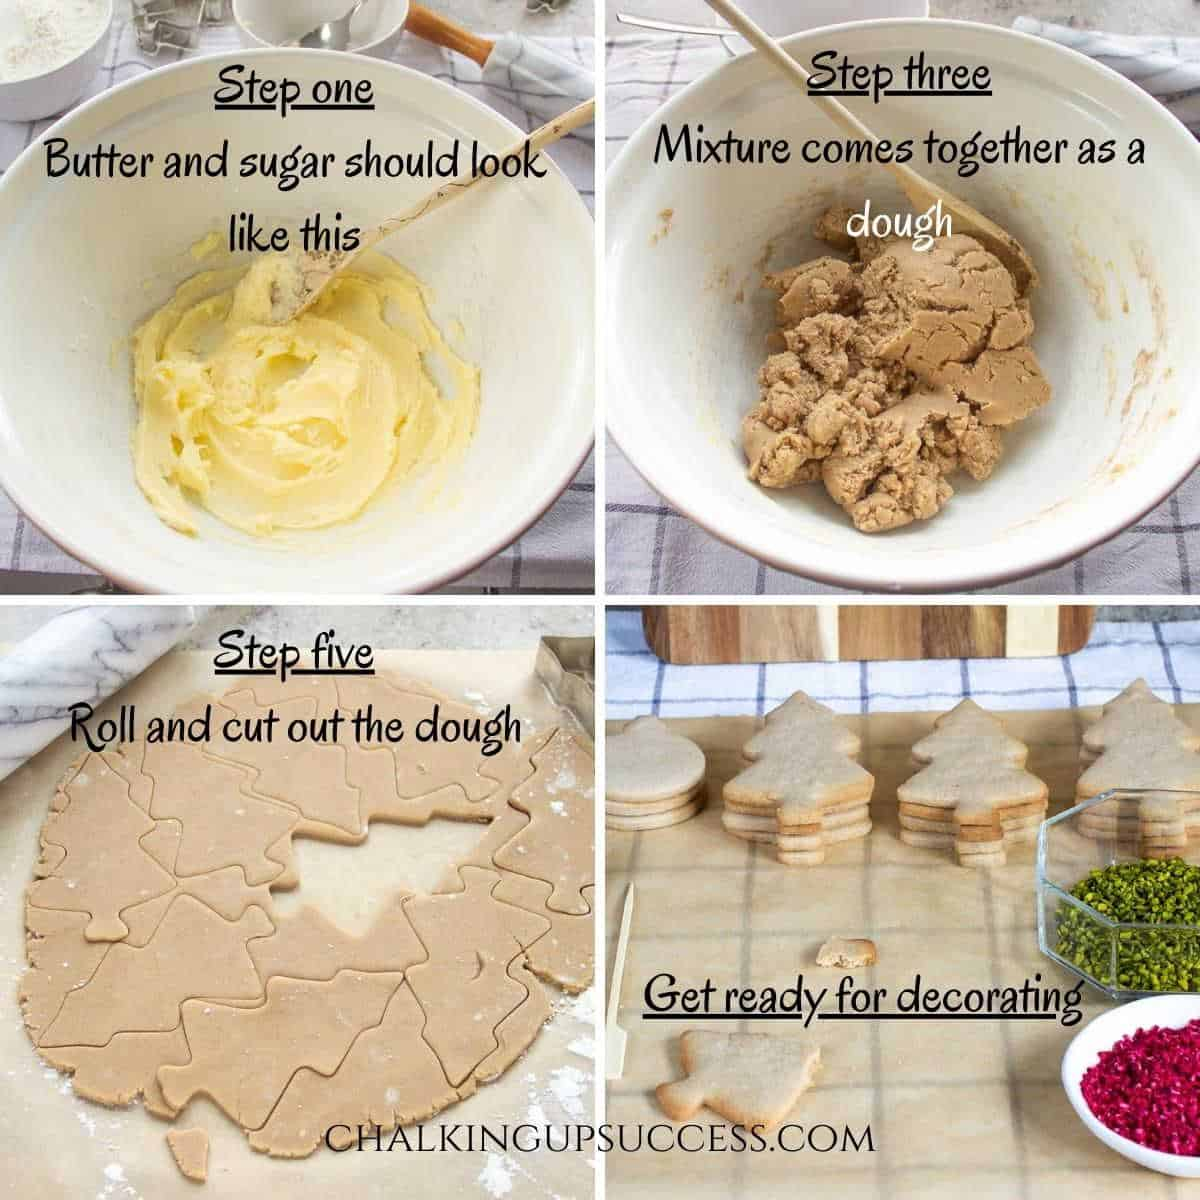 Chocolate-dipped Christmas tree cookies - collage of process photos for making cookie dough